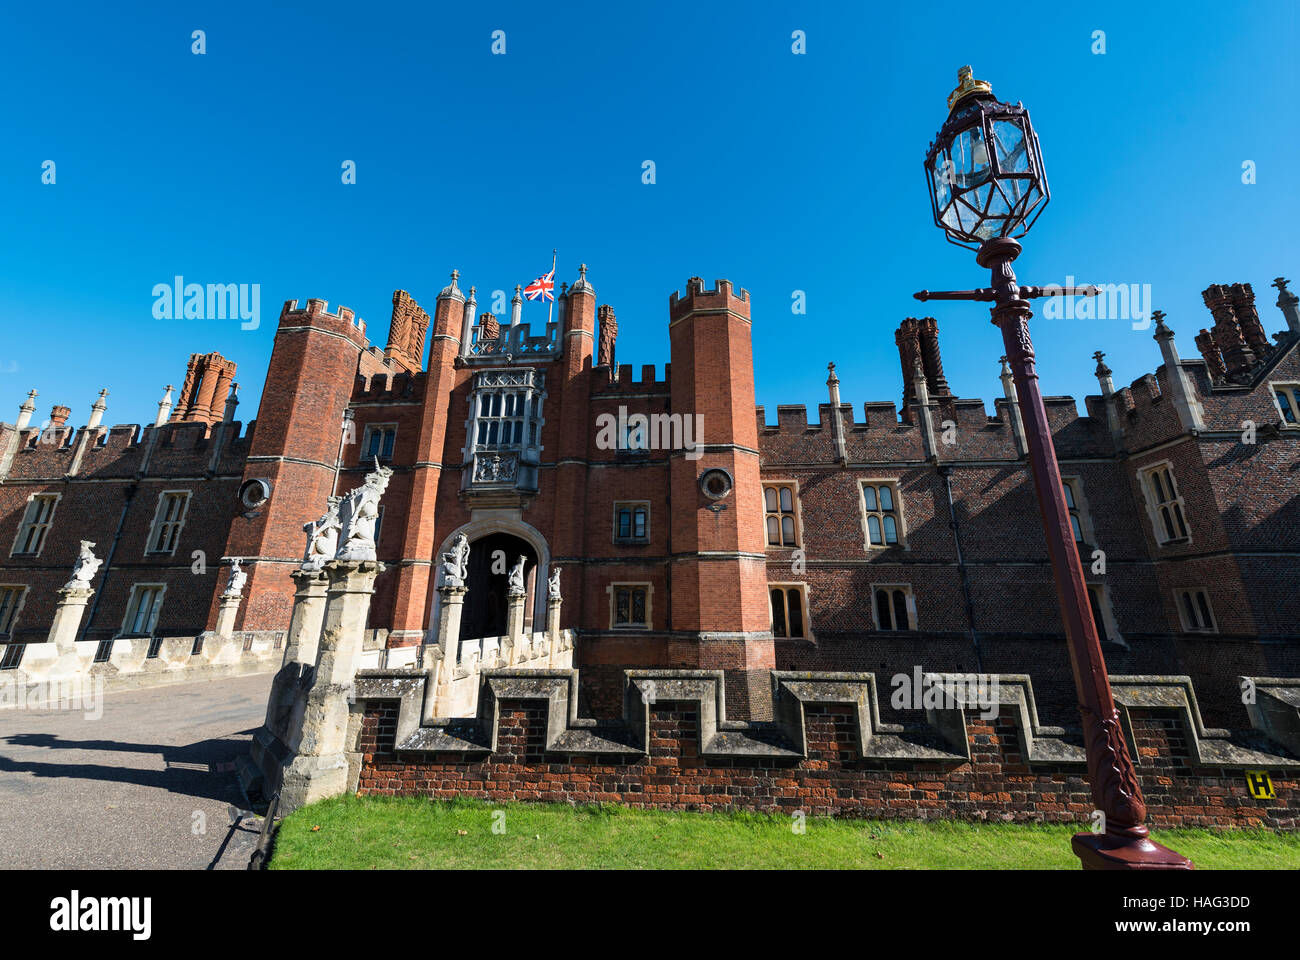 Hampton Court Palace, UK - Stock Image